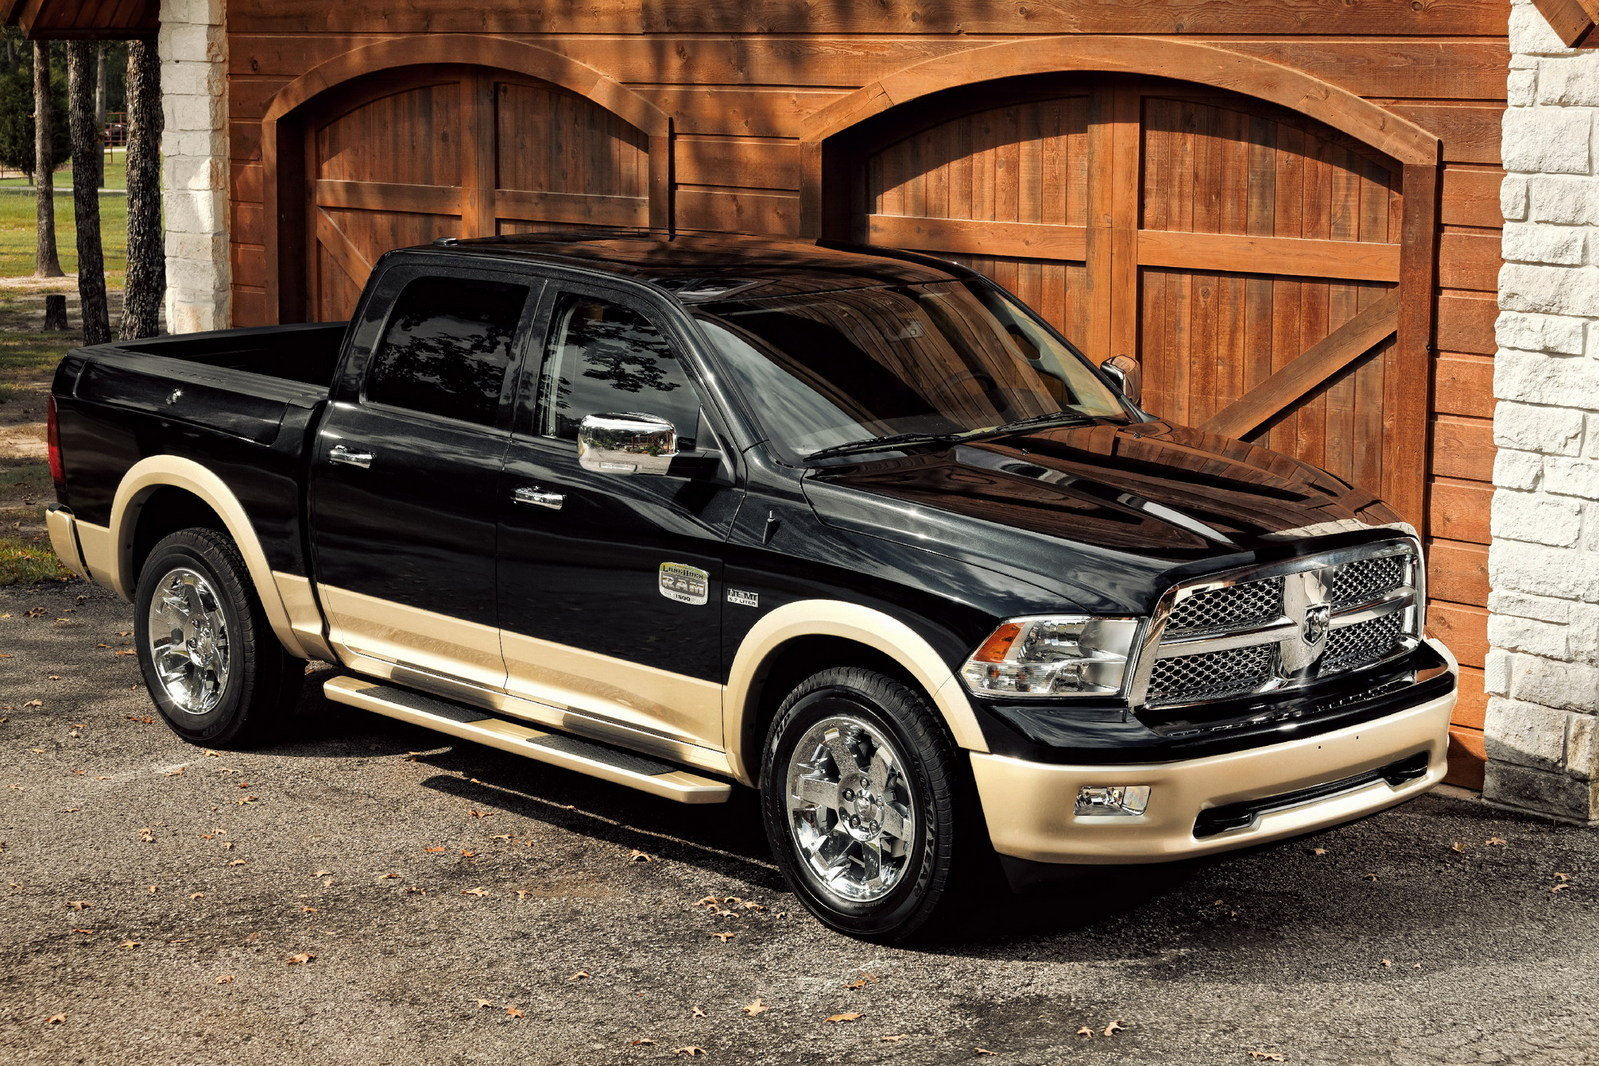 2011 Dodge Ram Laramie Longhorn Special Edition Review